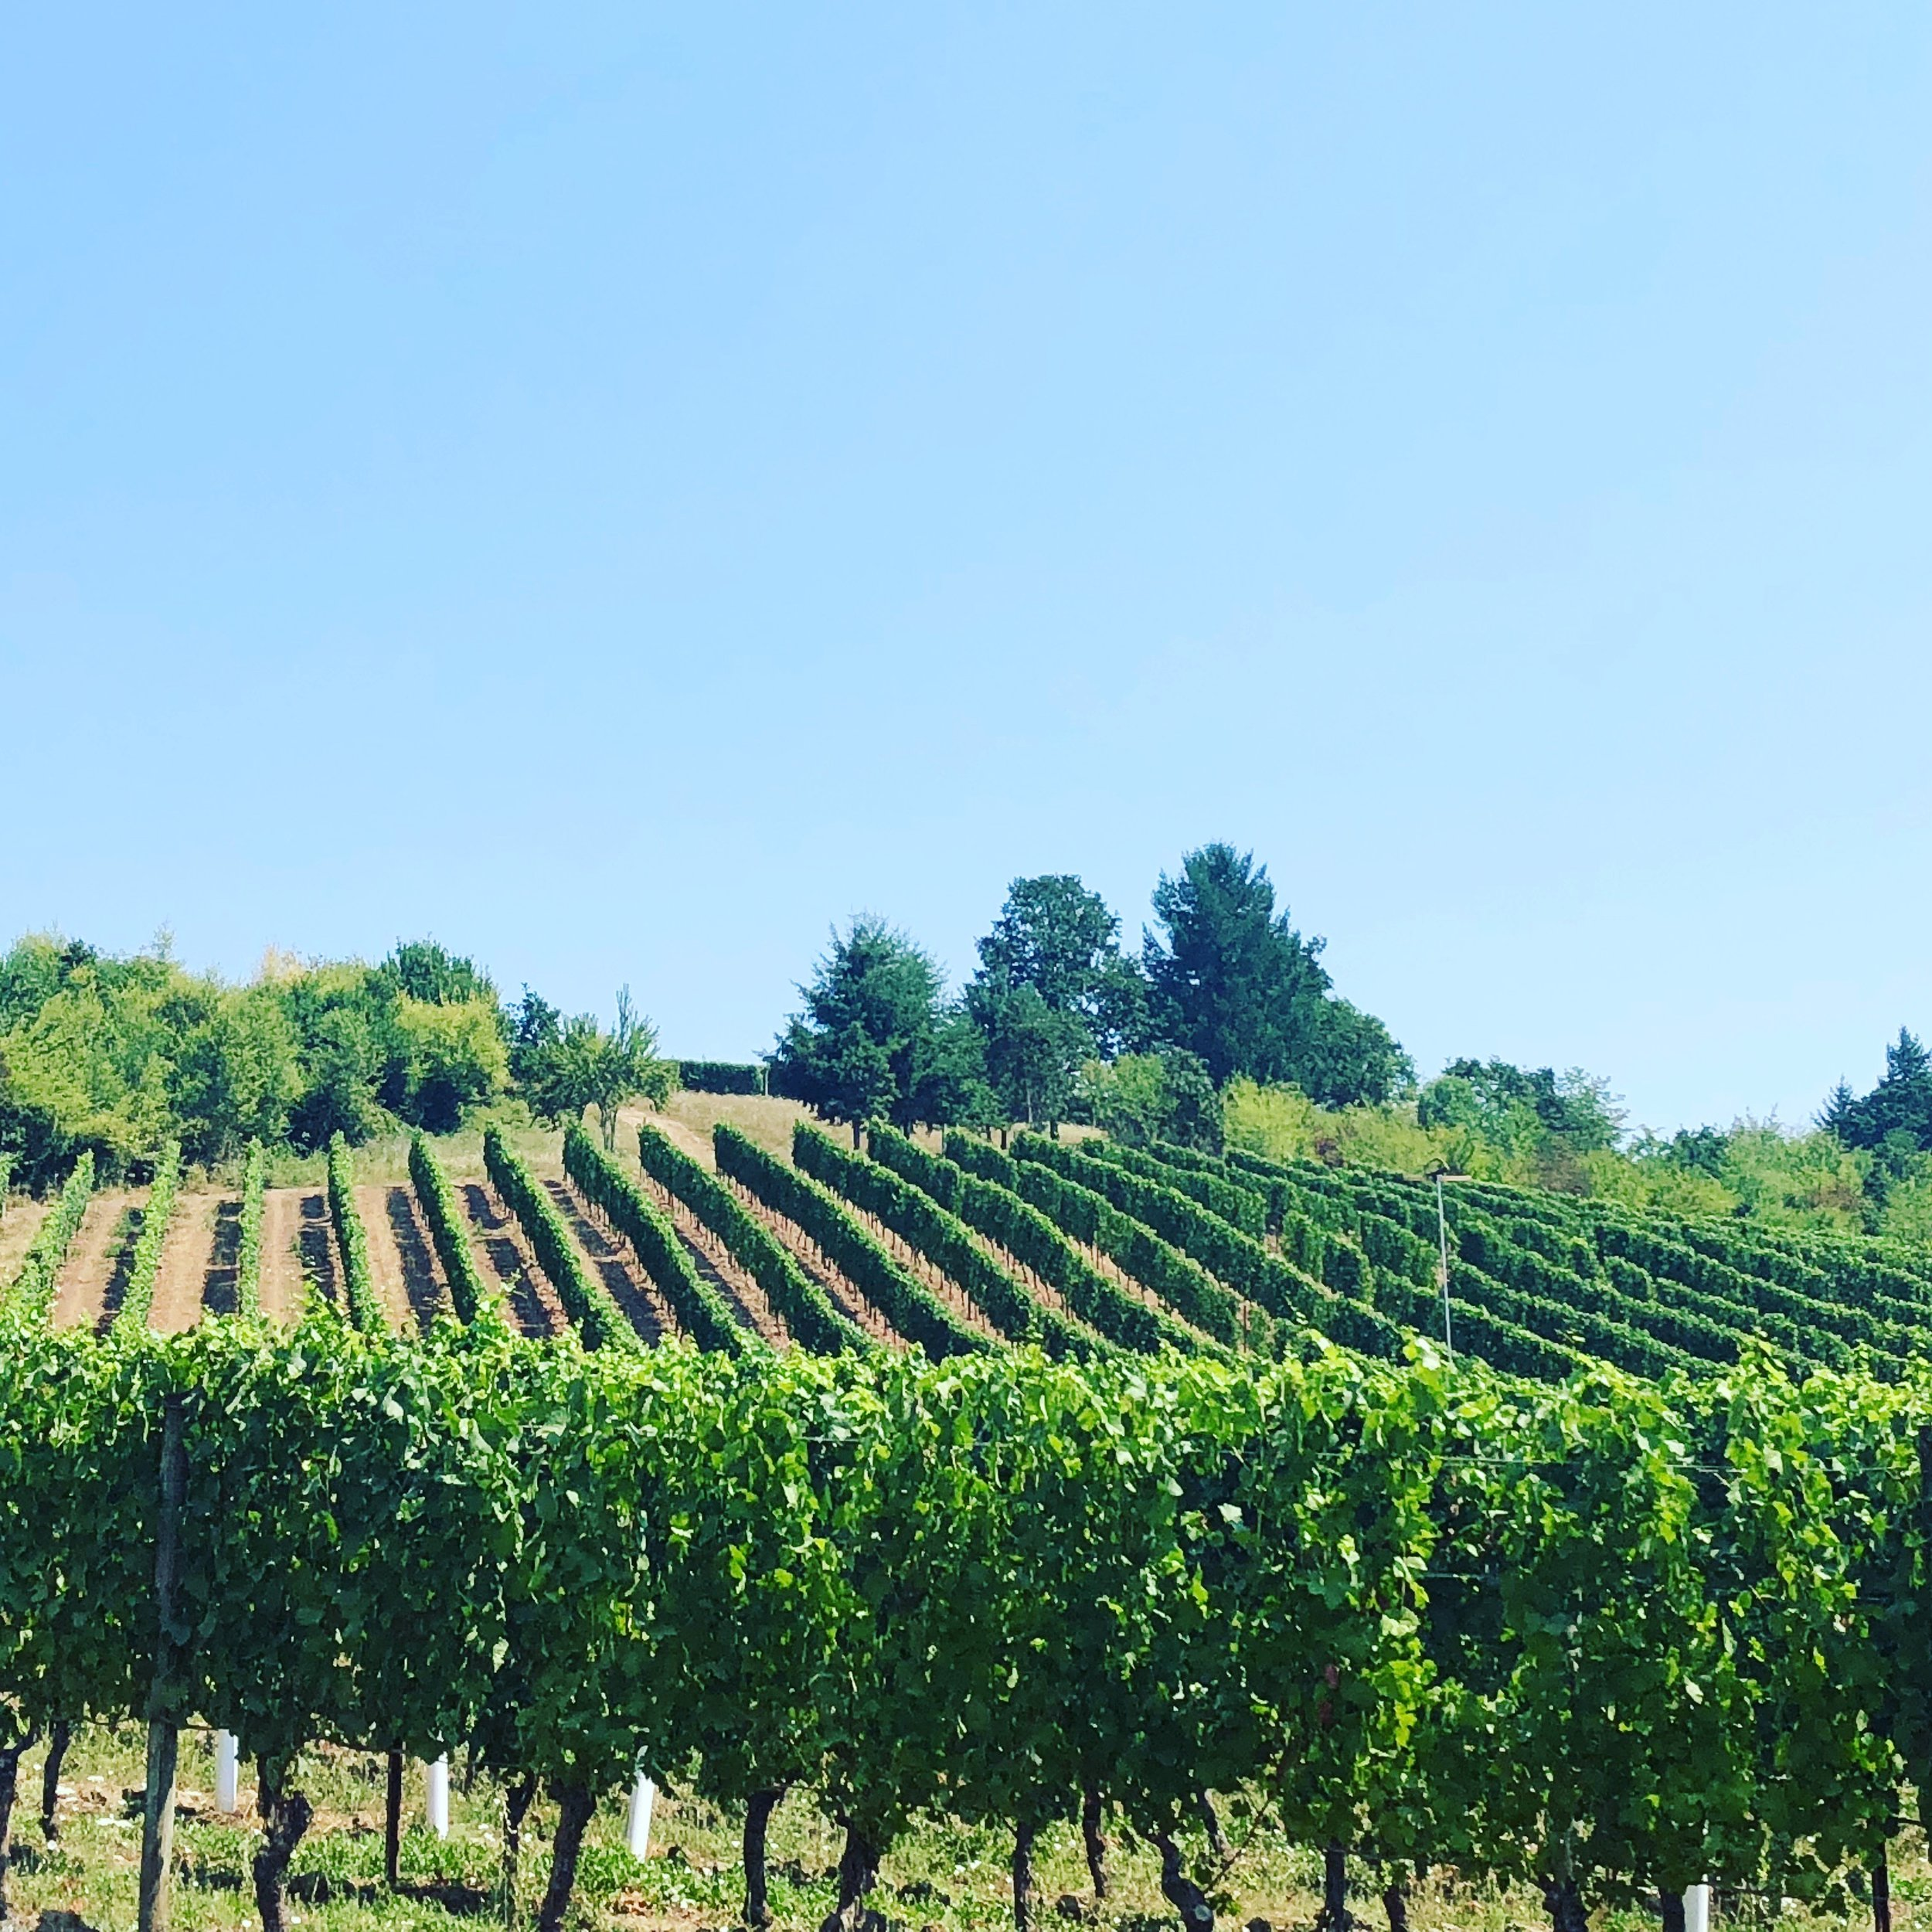 The Vineyards of Patricia Green Cellars - Nothing more relaxing and beautiful than the Oregon wine country with hill sides full of vineyards and Hazelnut trees. Truly a beautiful place to be! So many wonderful wineries to try and one of our favorites not to be missed is Patricia Green.